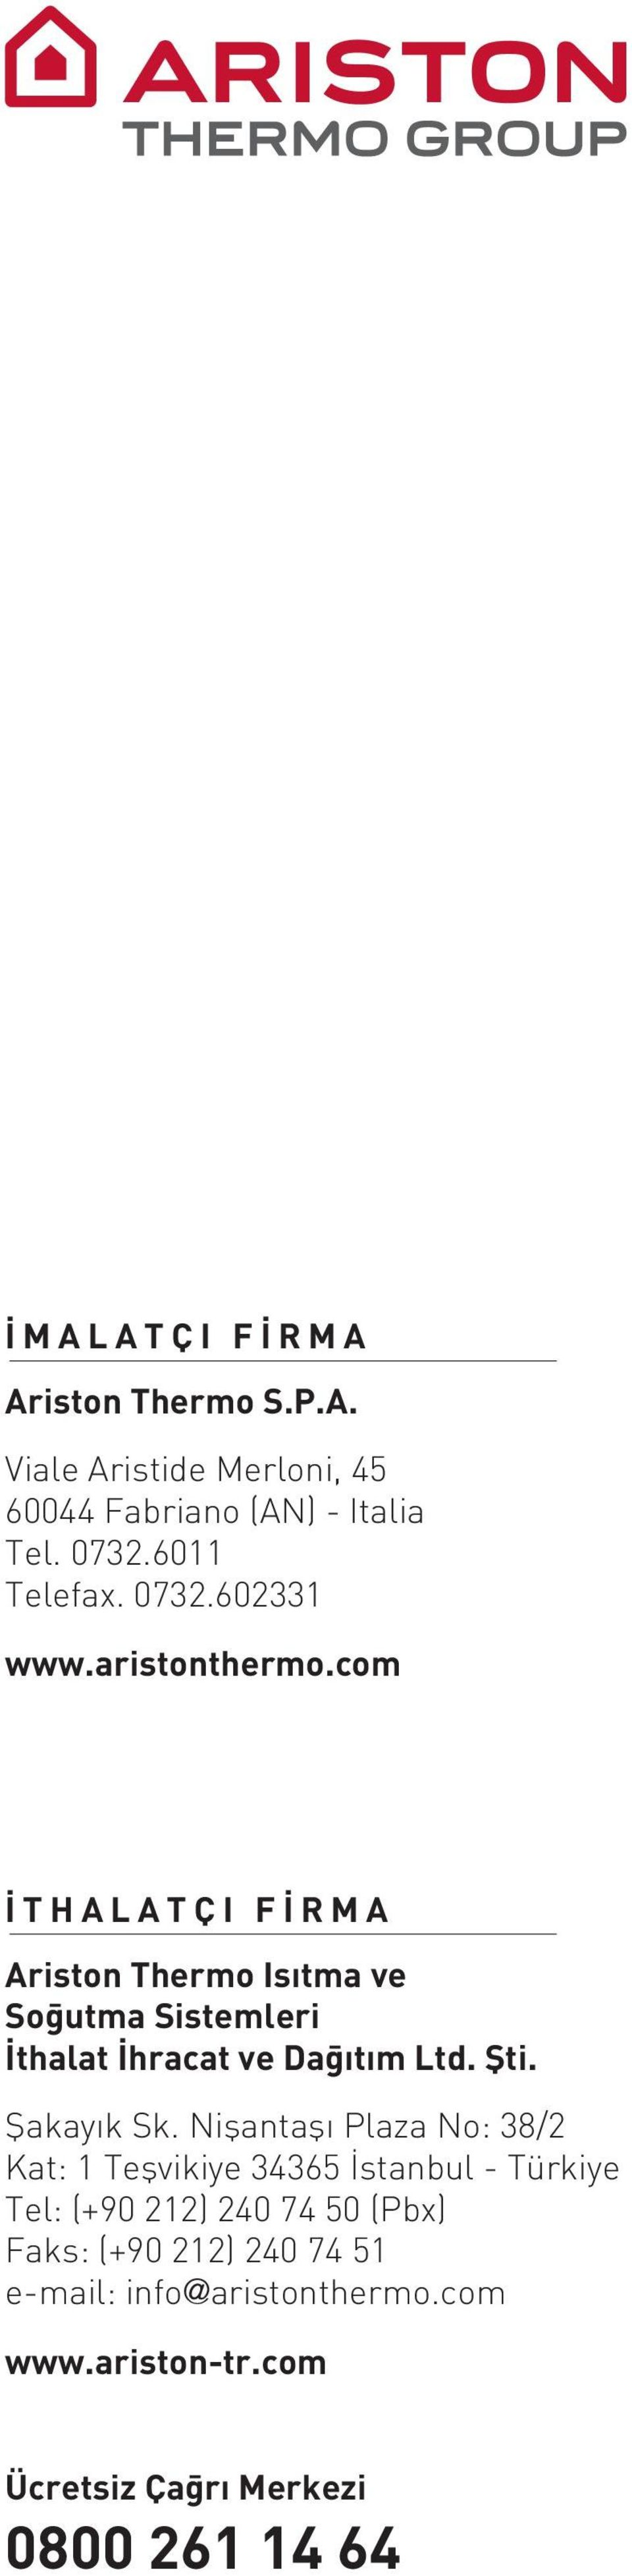 com THALATÇI F RMA Ariston Thermo Is tma ve So utma Sistemleri thalat hracat ve Da ıtım Ltd. fiti. fiakay k Sk.